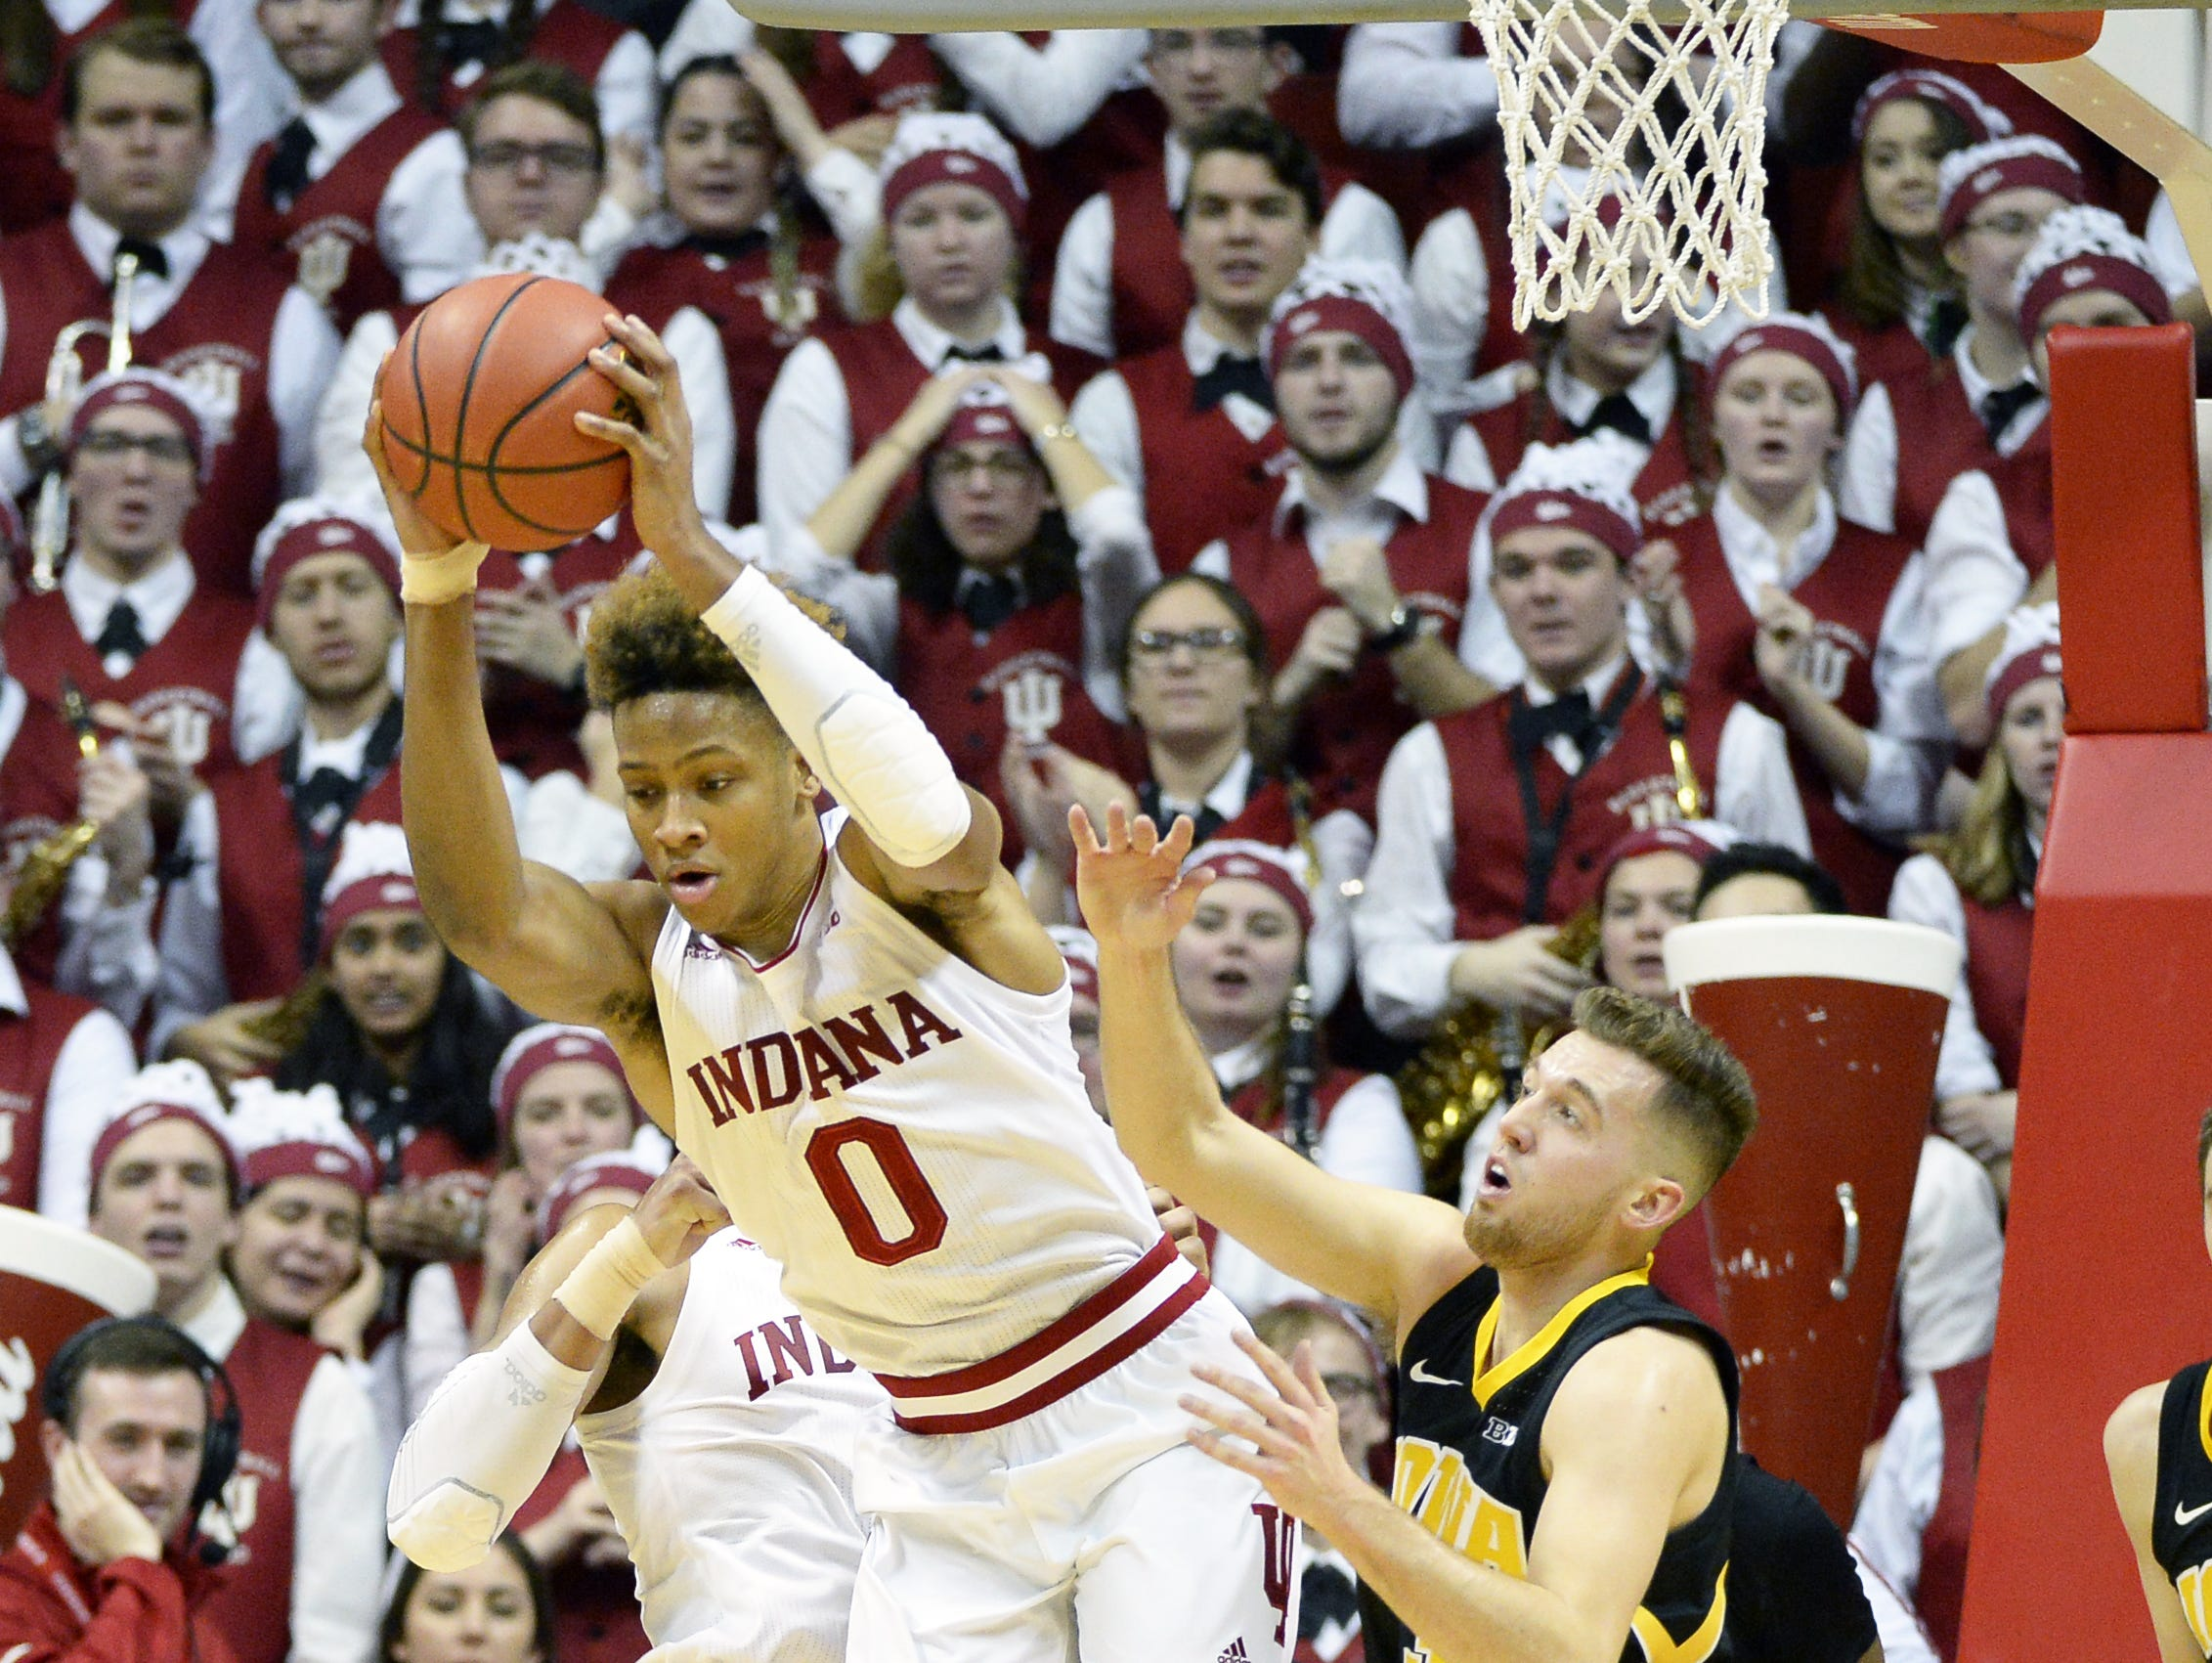 Indiana Hoosiers guard Romeo Langford (0) rebounds the ball during the game against Iowa at Simon Skjodt Assembly Hall in Bloomington Ind., on Thursday, Feb. 7, 2019.